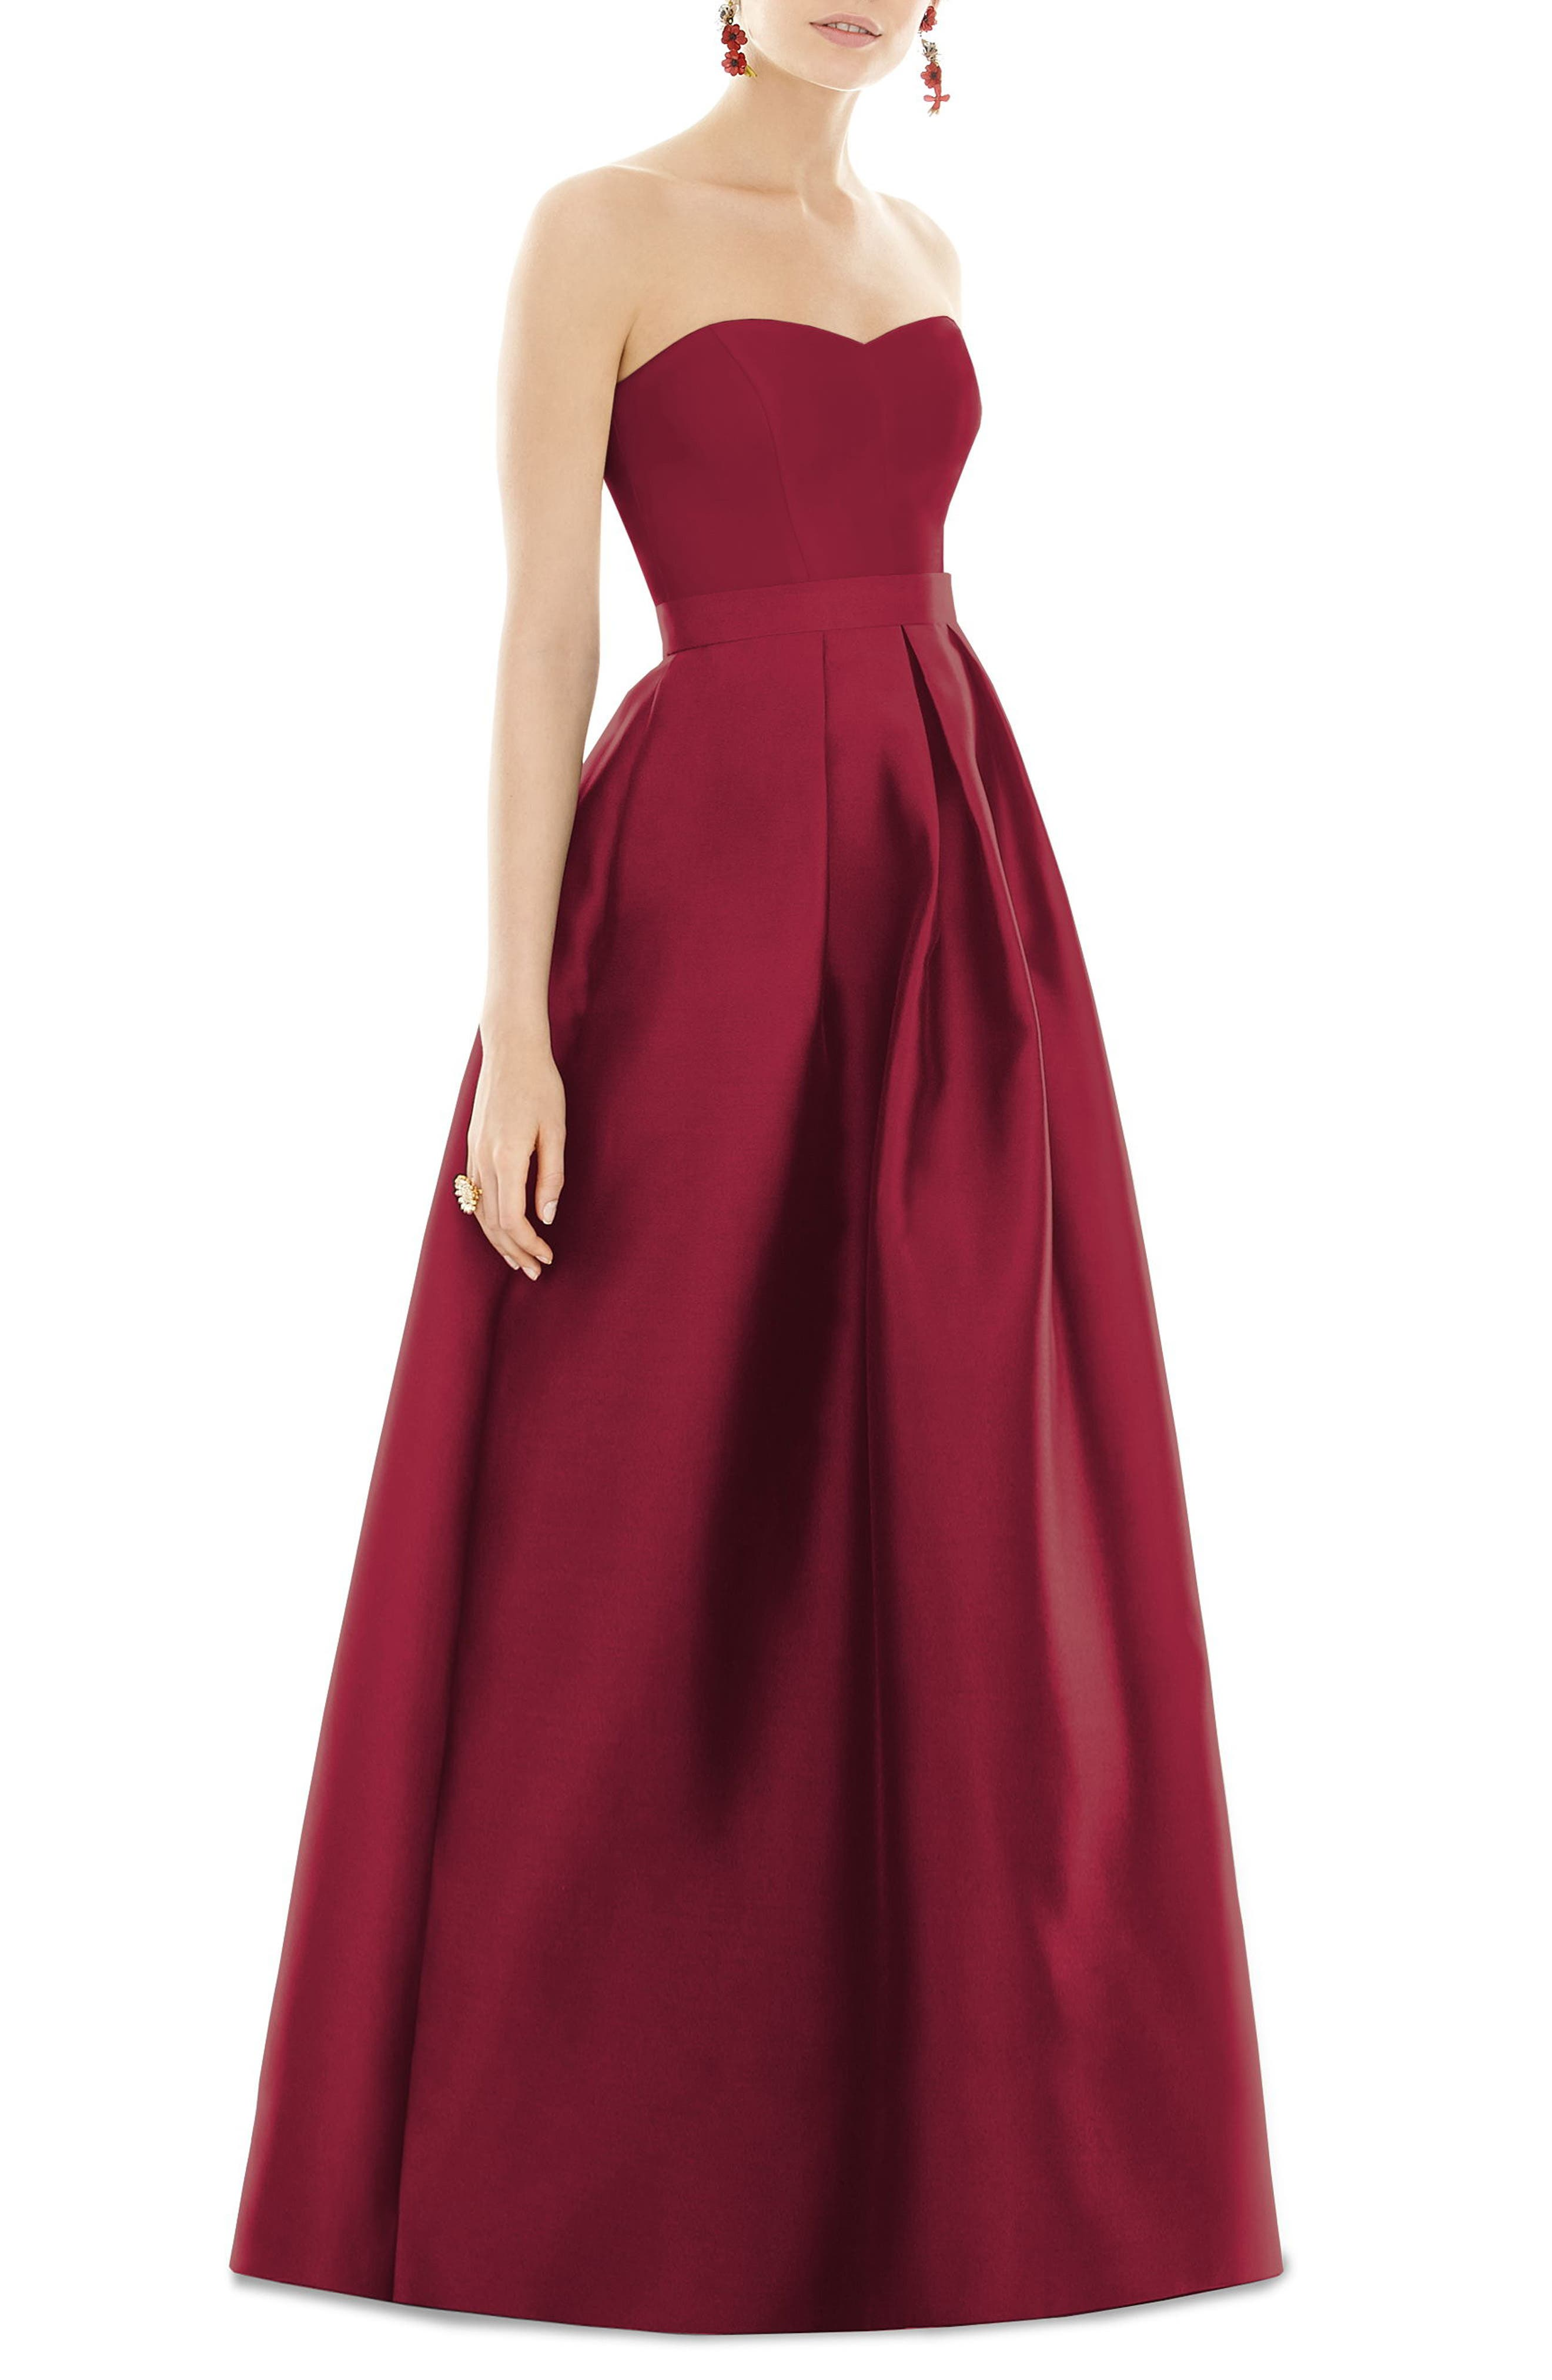 Alternate Image 1 Selected - Alfred Sung Strapless Sateen Gown